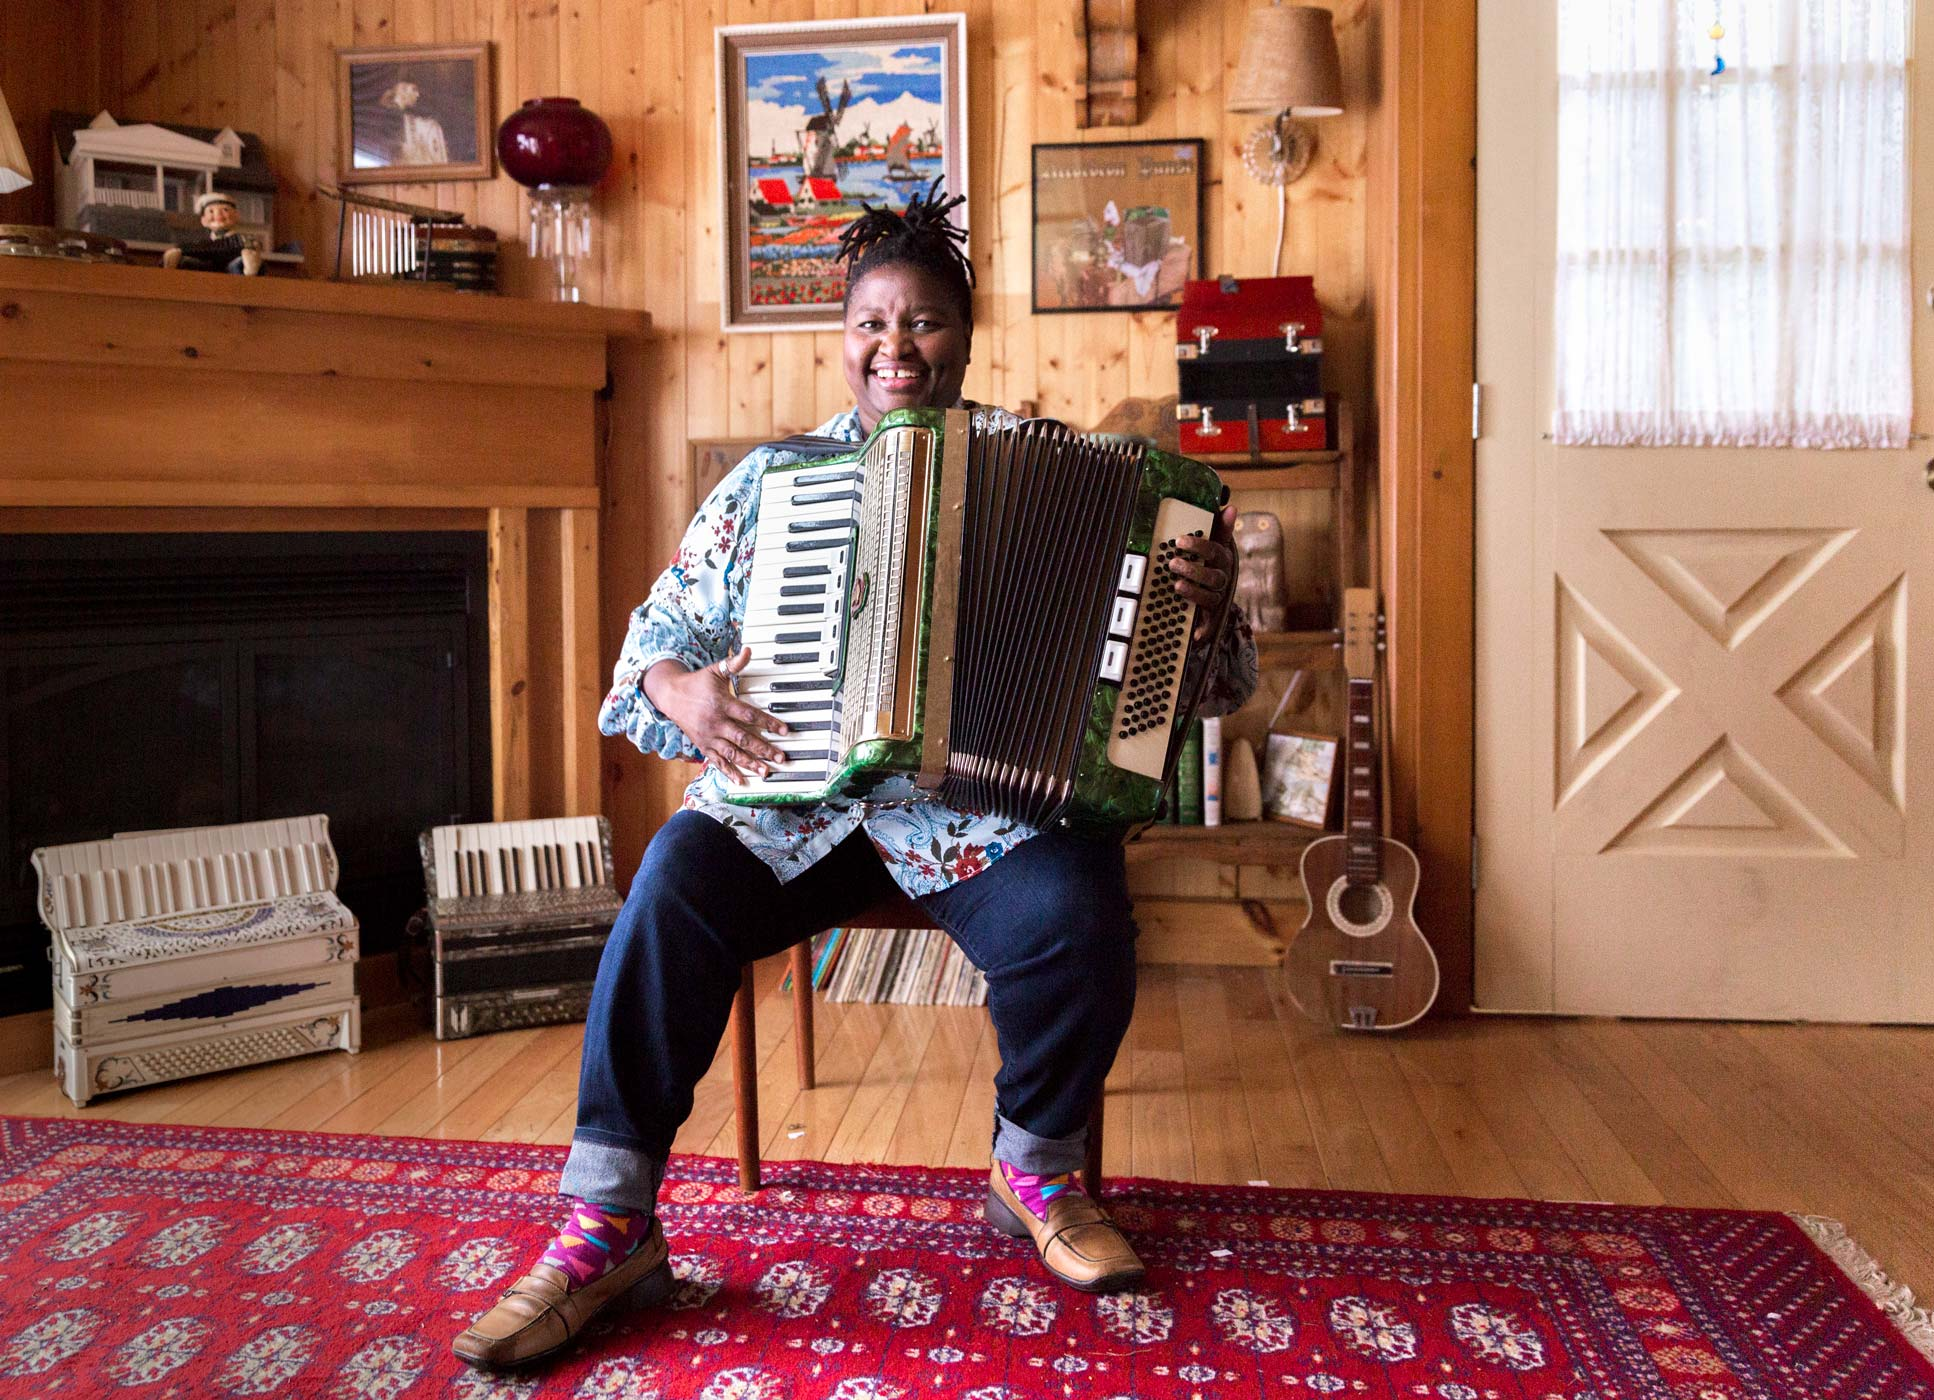 d1s12_OnSet_Accordian_0134631-website3